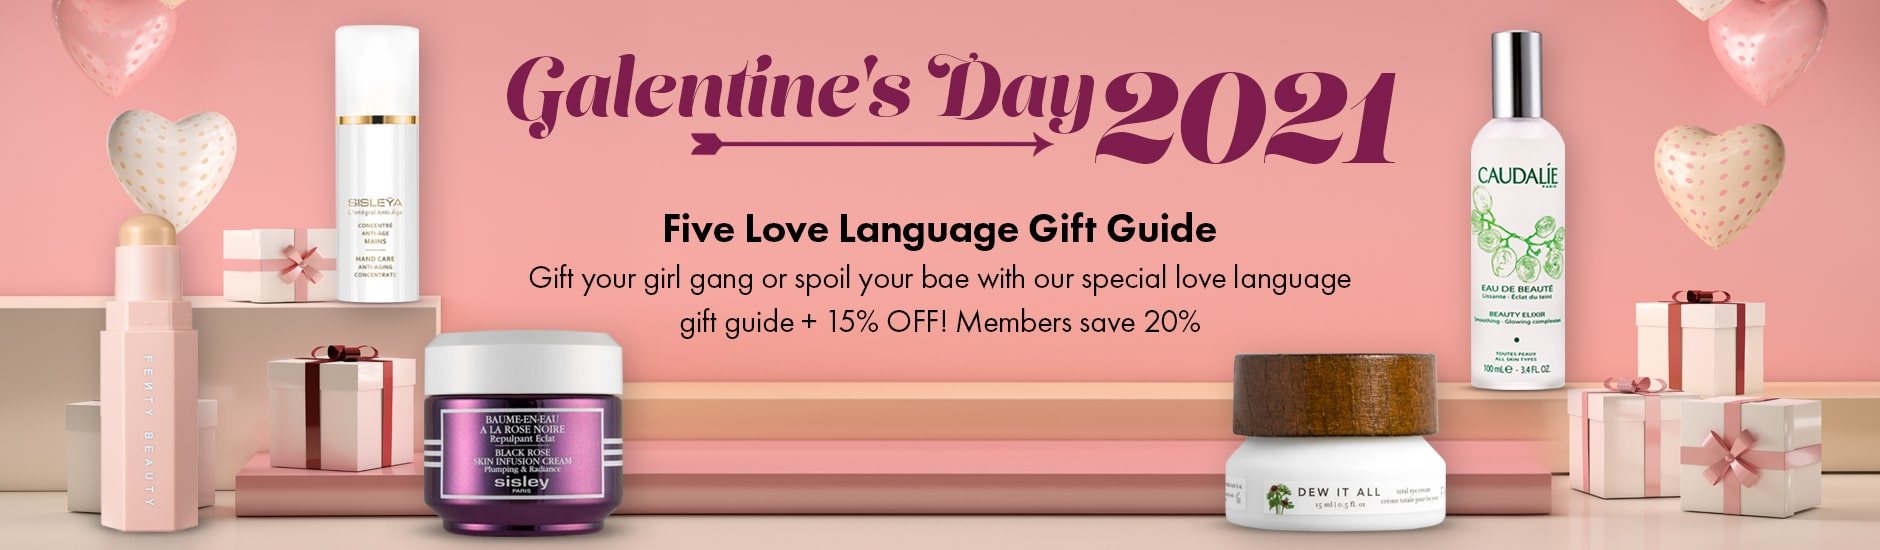 Galentine's Day promotion